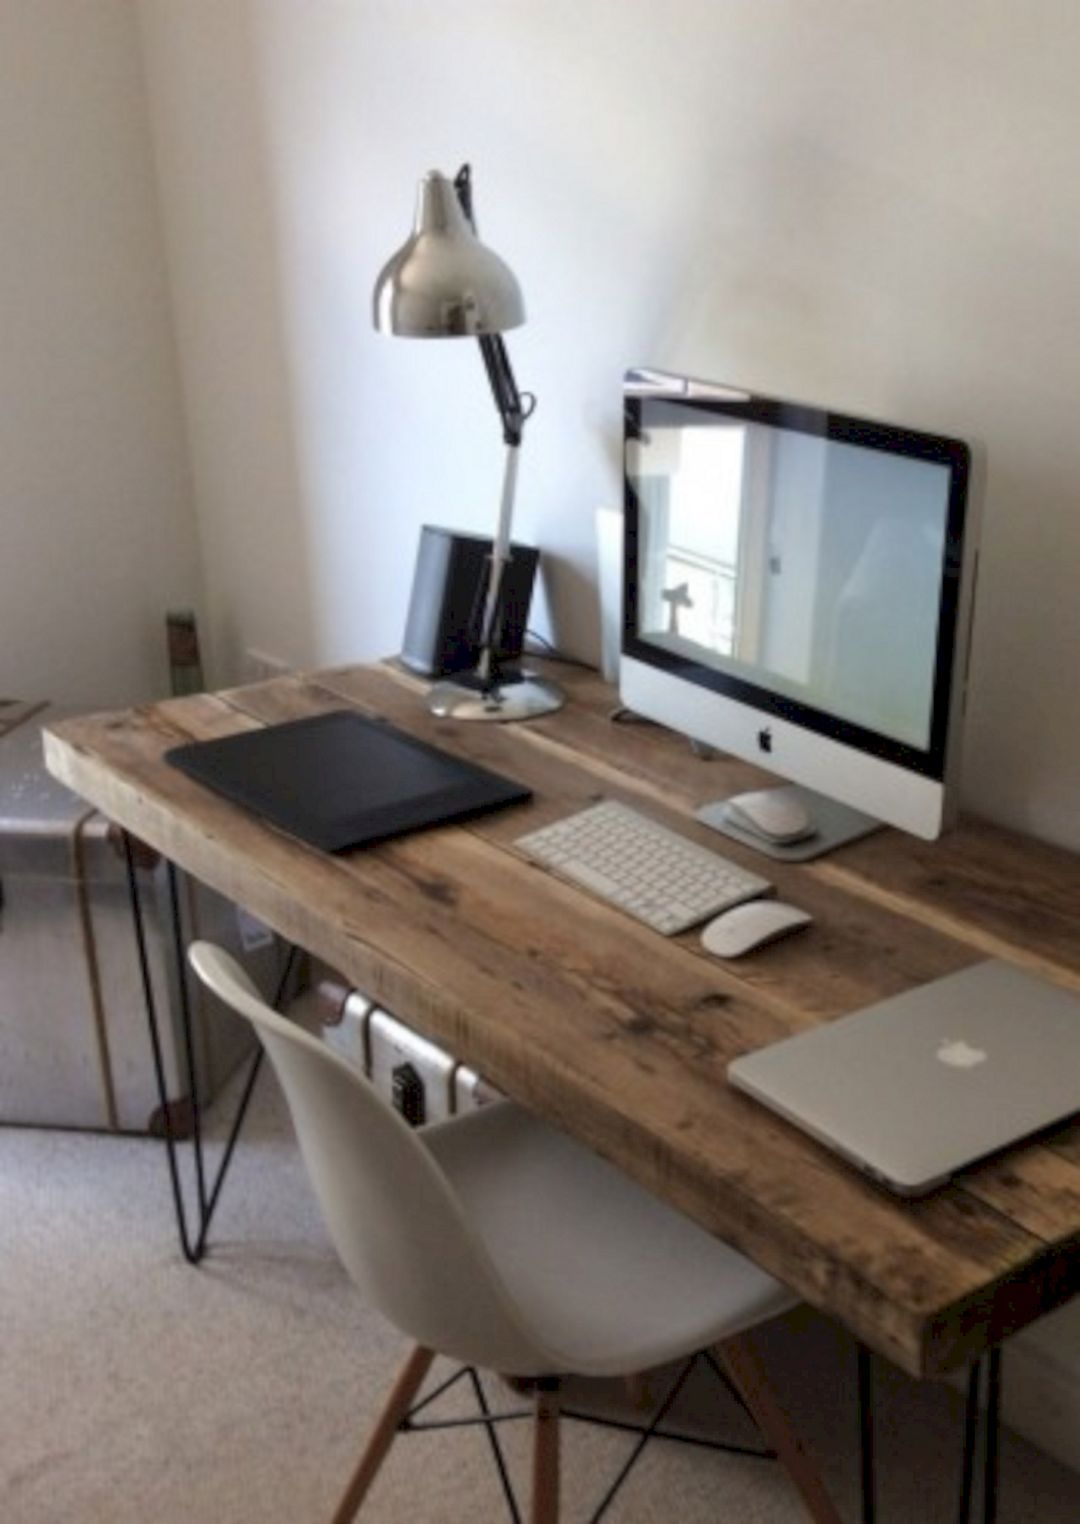 Apartment Computer Desk Pin By Karley Strongoli On Dream Home Home Office Design